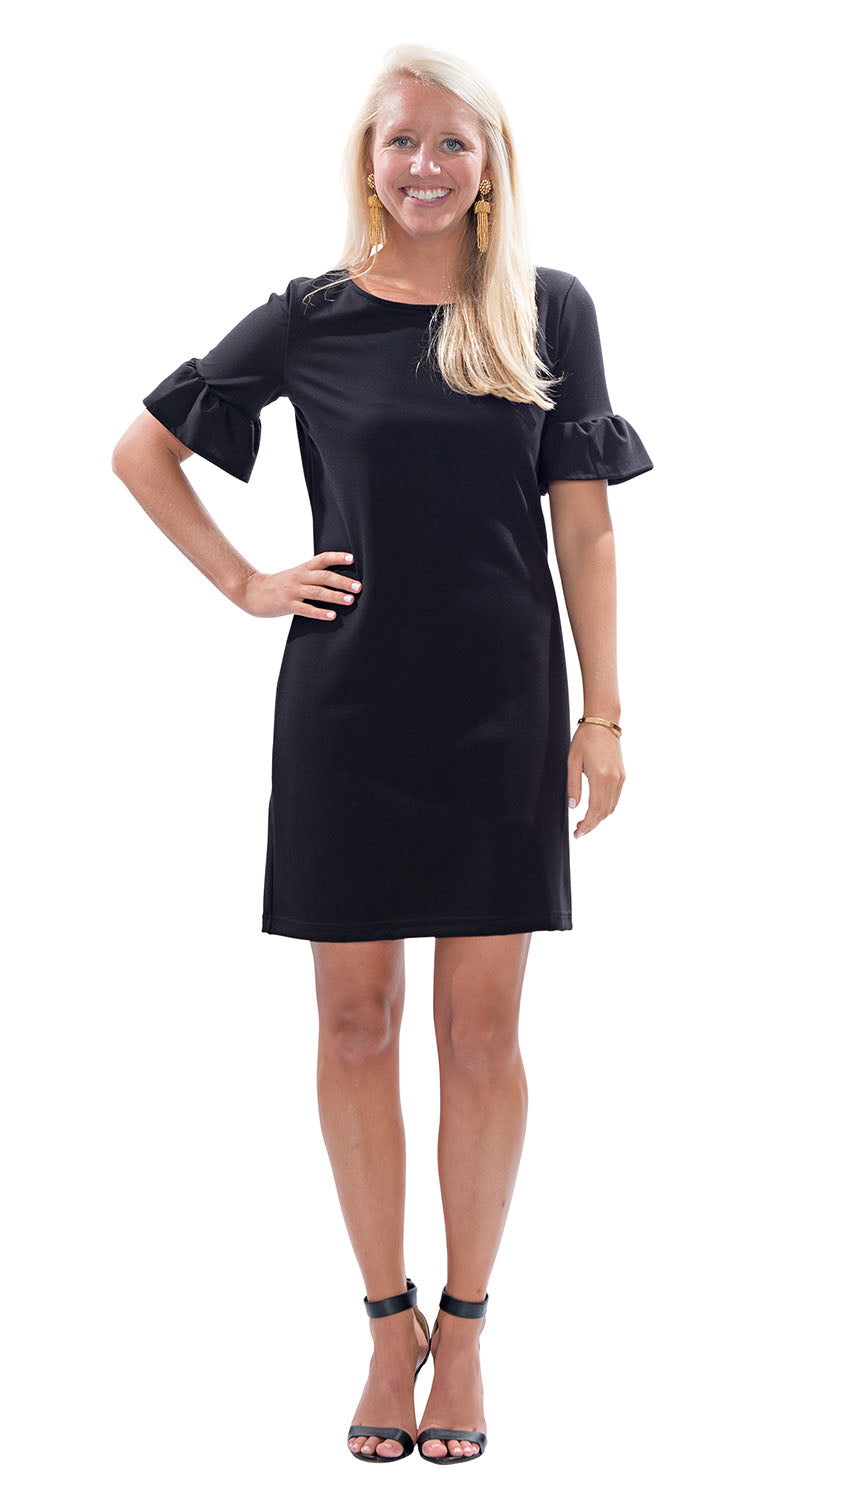 Dockside Dress - Black PONTE KNIT